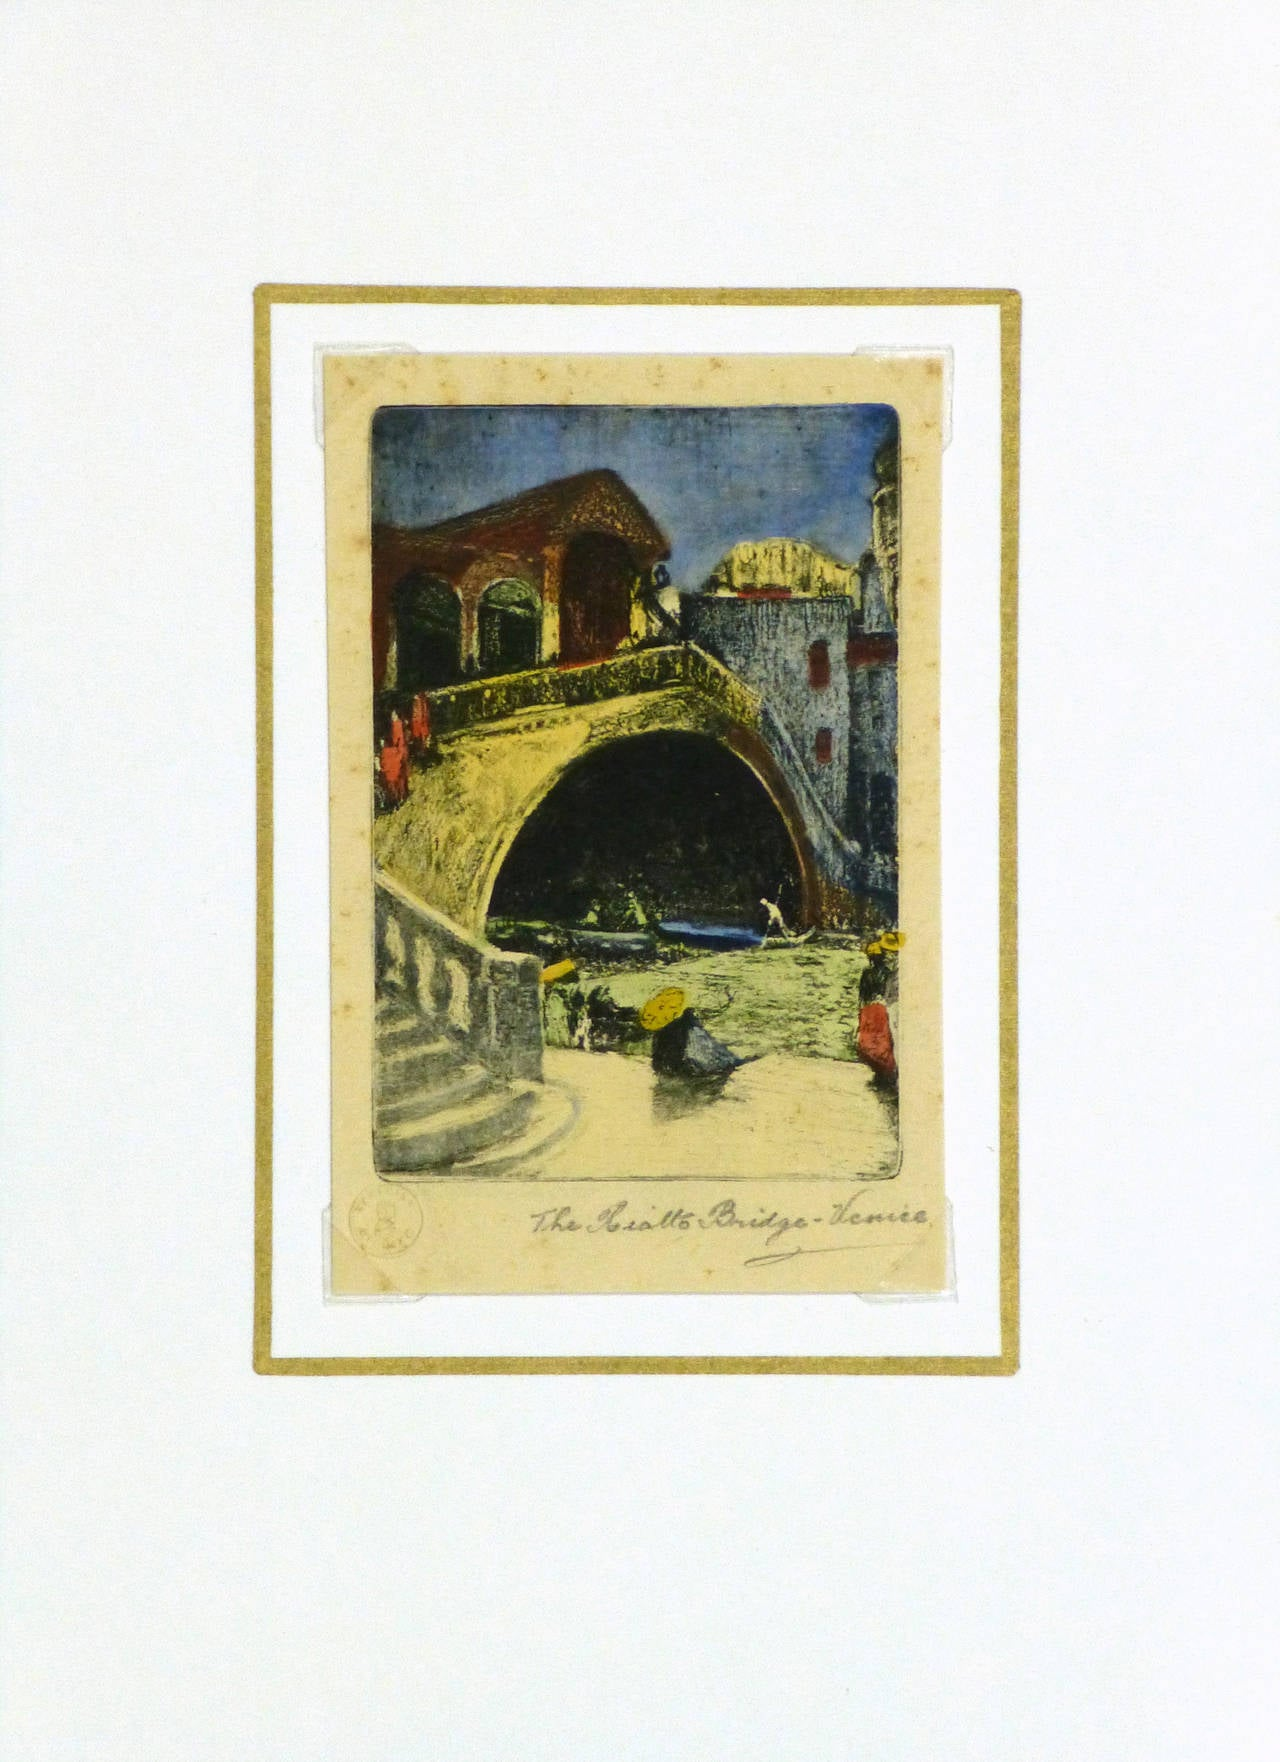 Small but finely detailed drypoint etching of a lovely scene from the Rialto Bridge in Venice, circa 1930. Titled lower right. Blind stamp lower left.